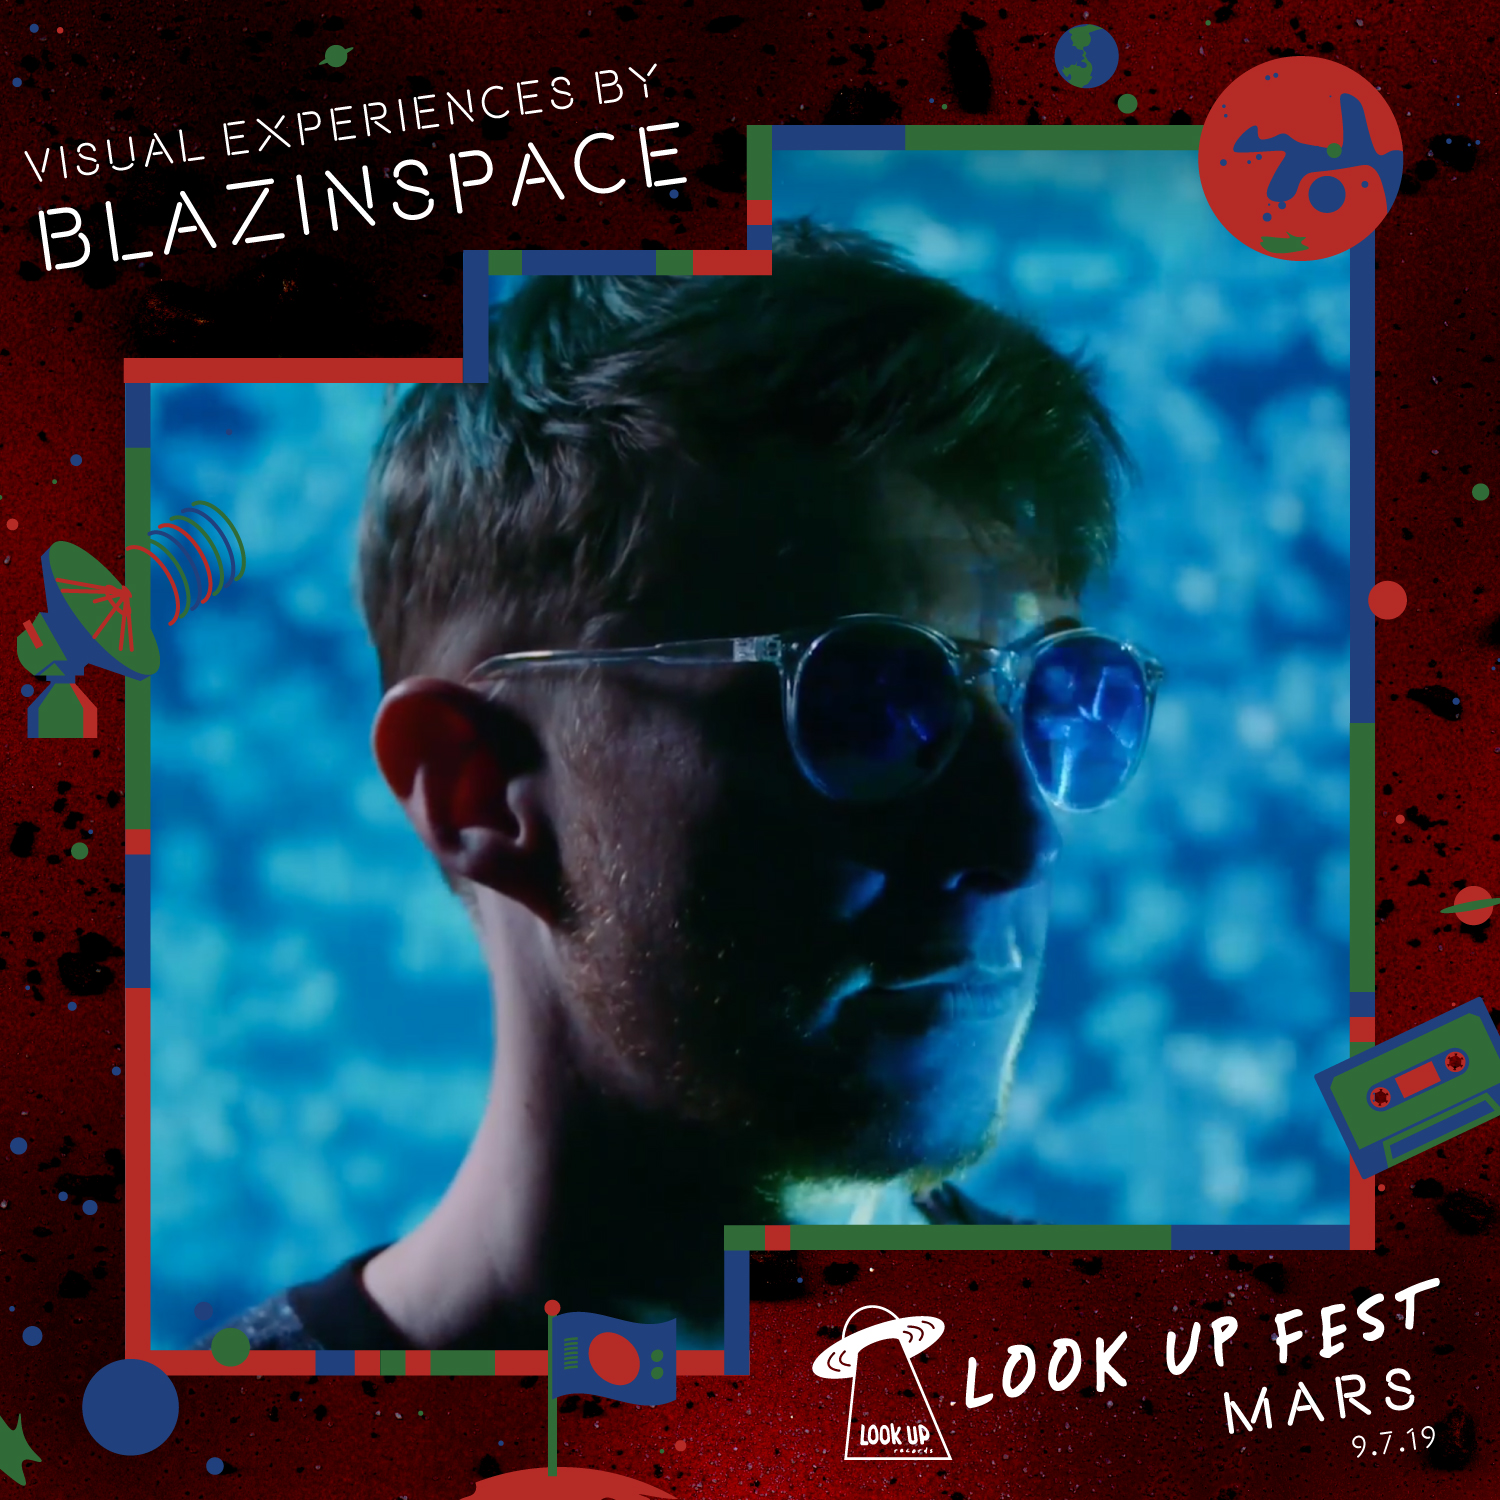 BLAZINSPACE - Blazinspace is a local VJ that creates great live visuals, music videos, and stories. At Look Up Fest: Mars he'll set things ablaze with Martian landscapes, teleporting our minds to the red dusty rock planet with stunning floor-to-ceiling projections.